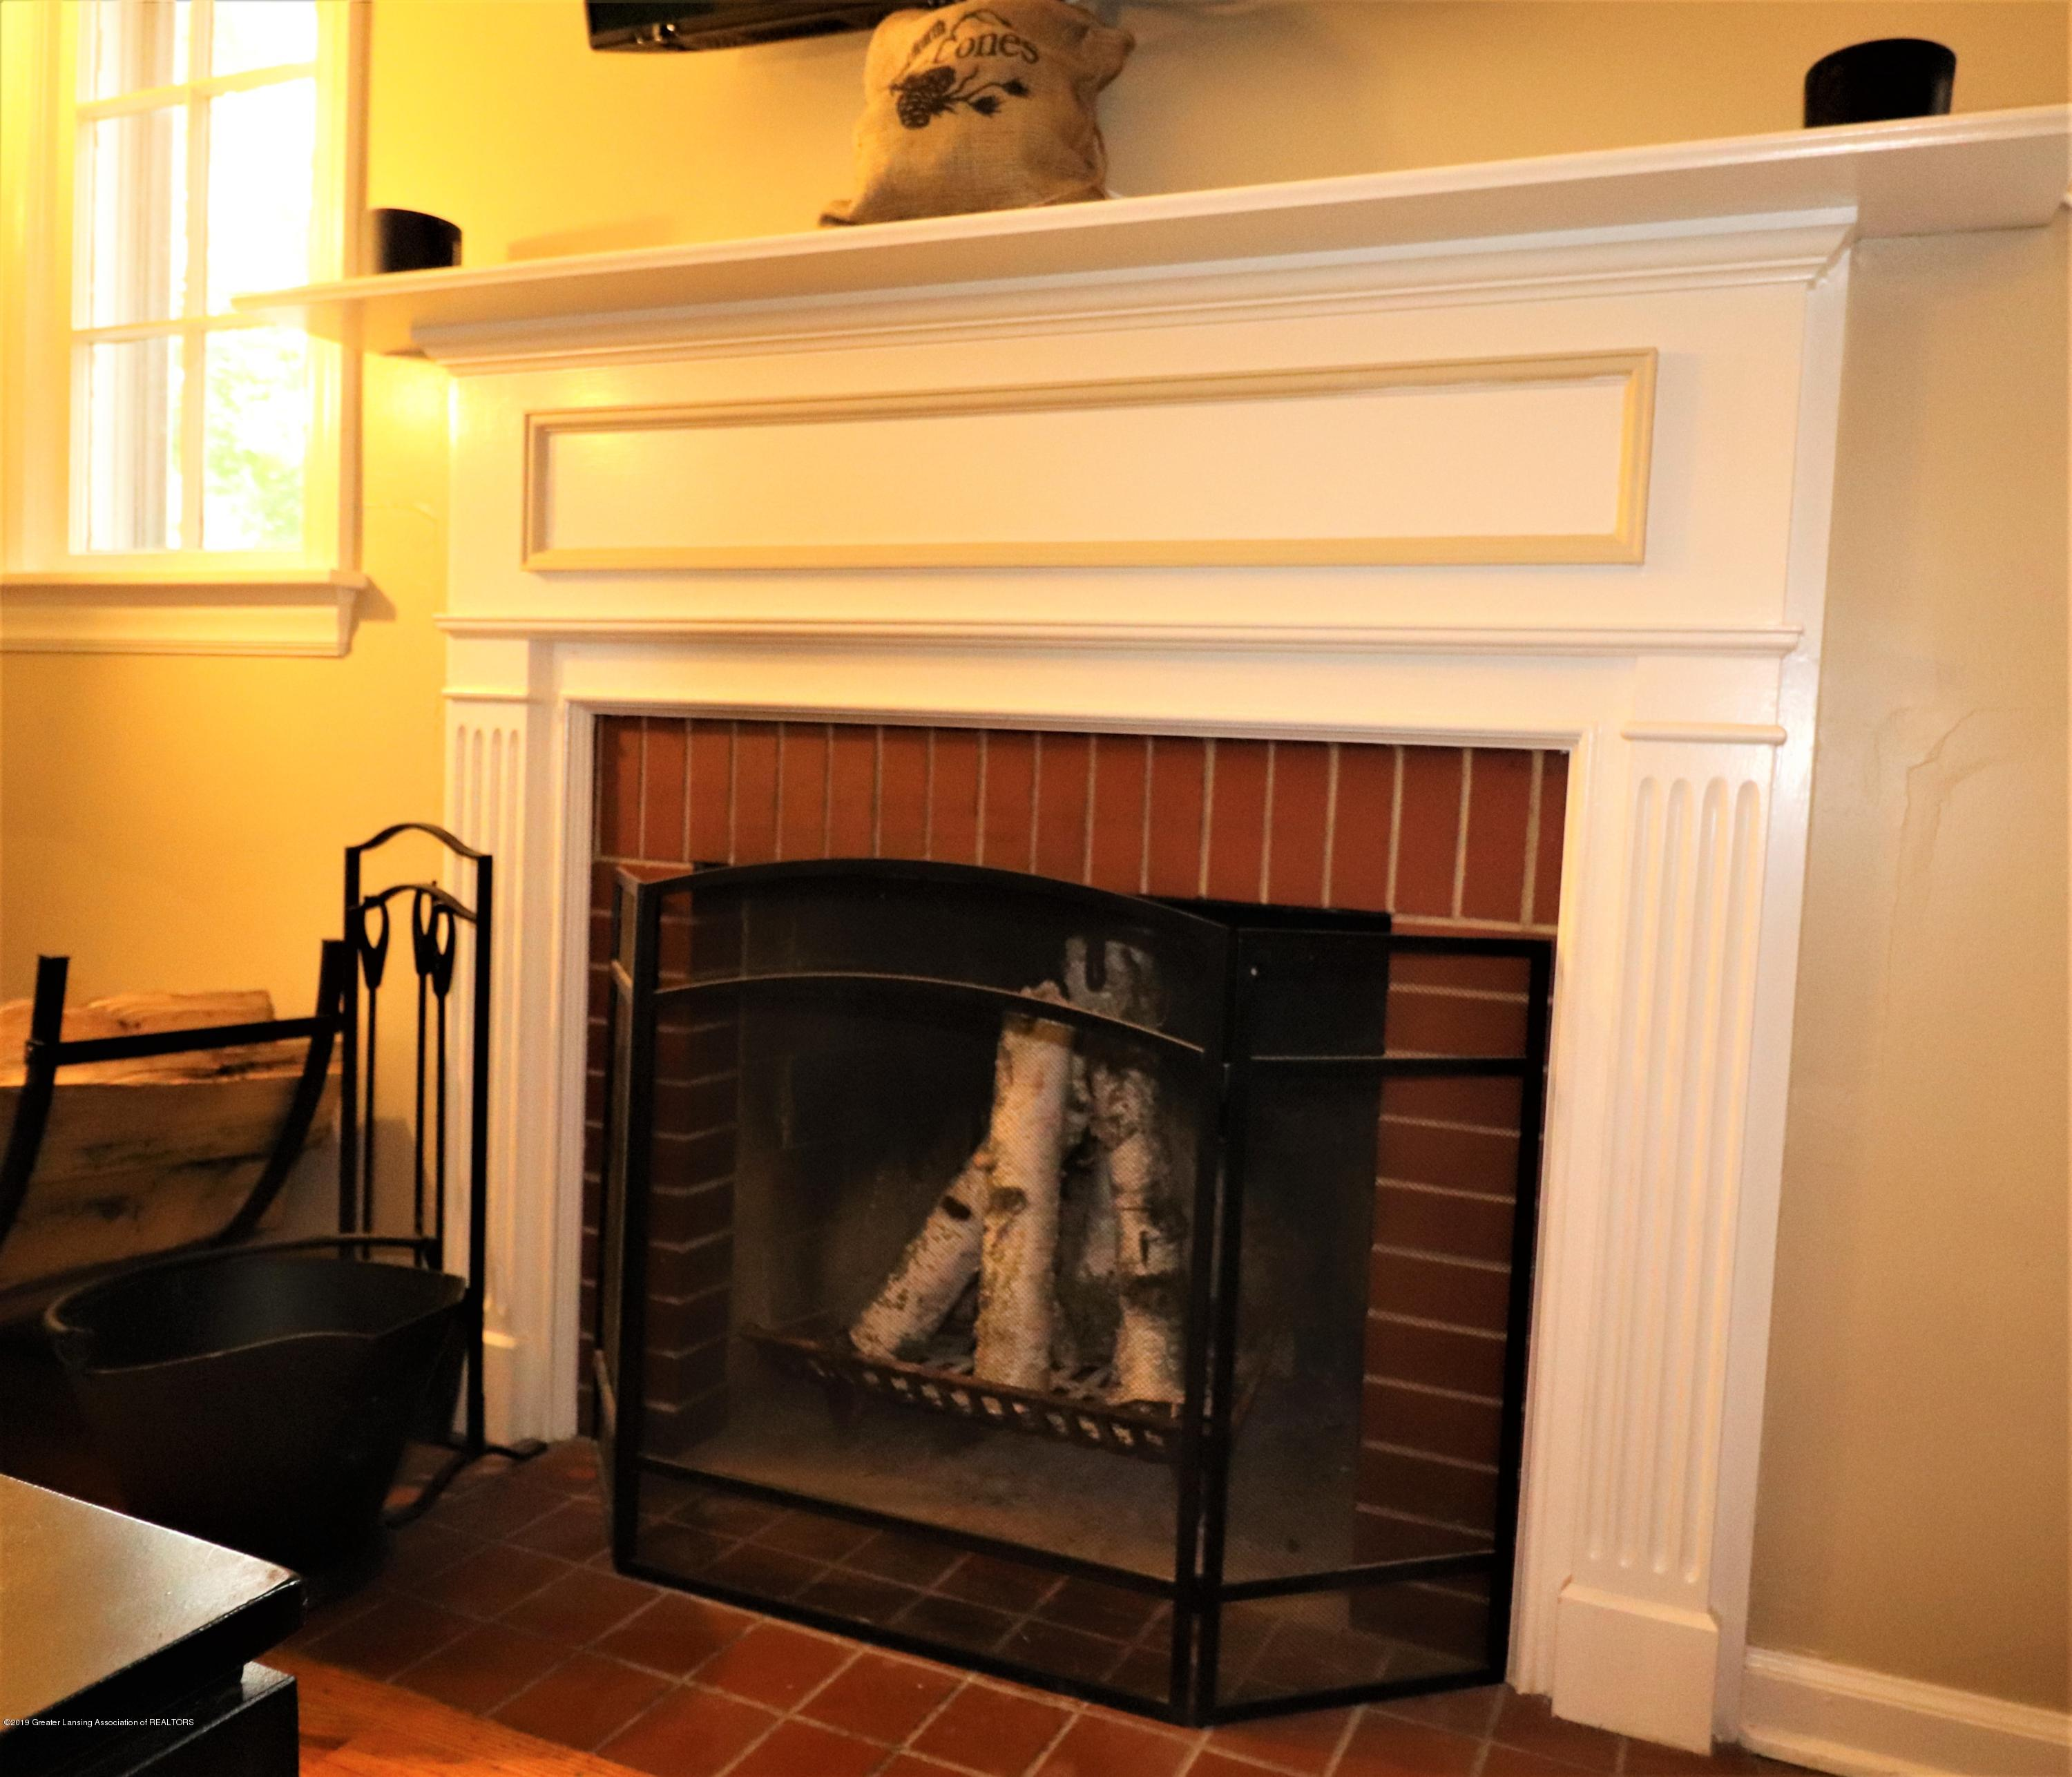 1201 Cleo St - 7 Wood burning Fireplace in LR - 7